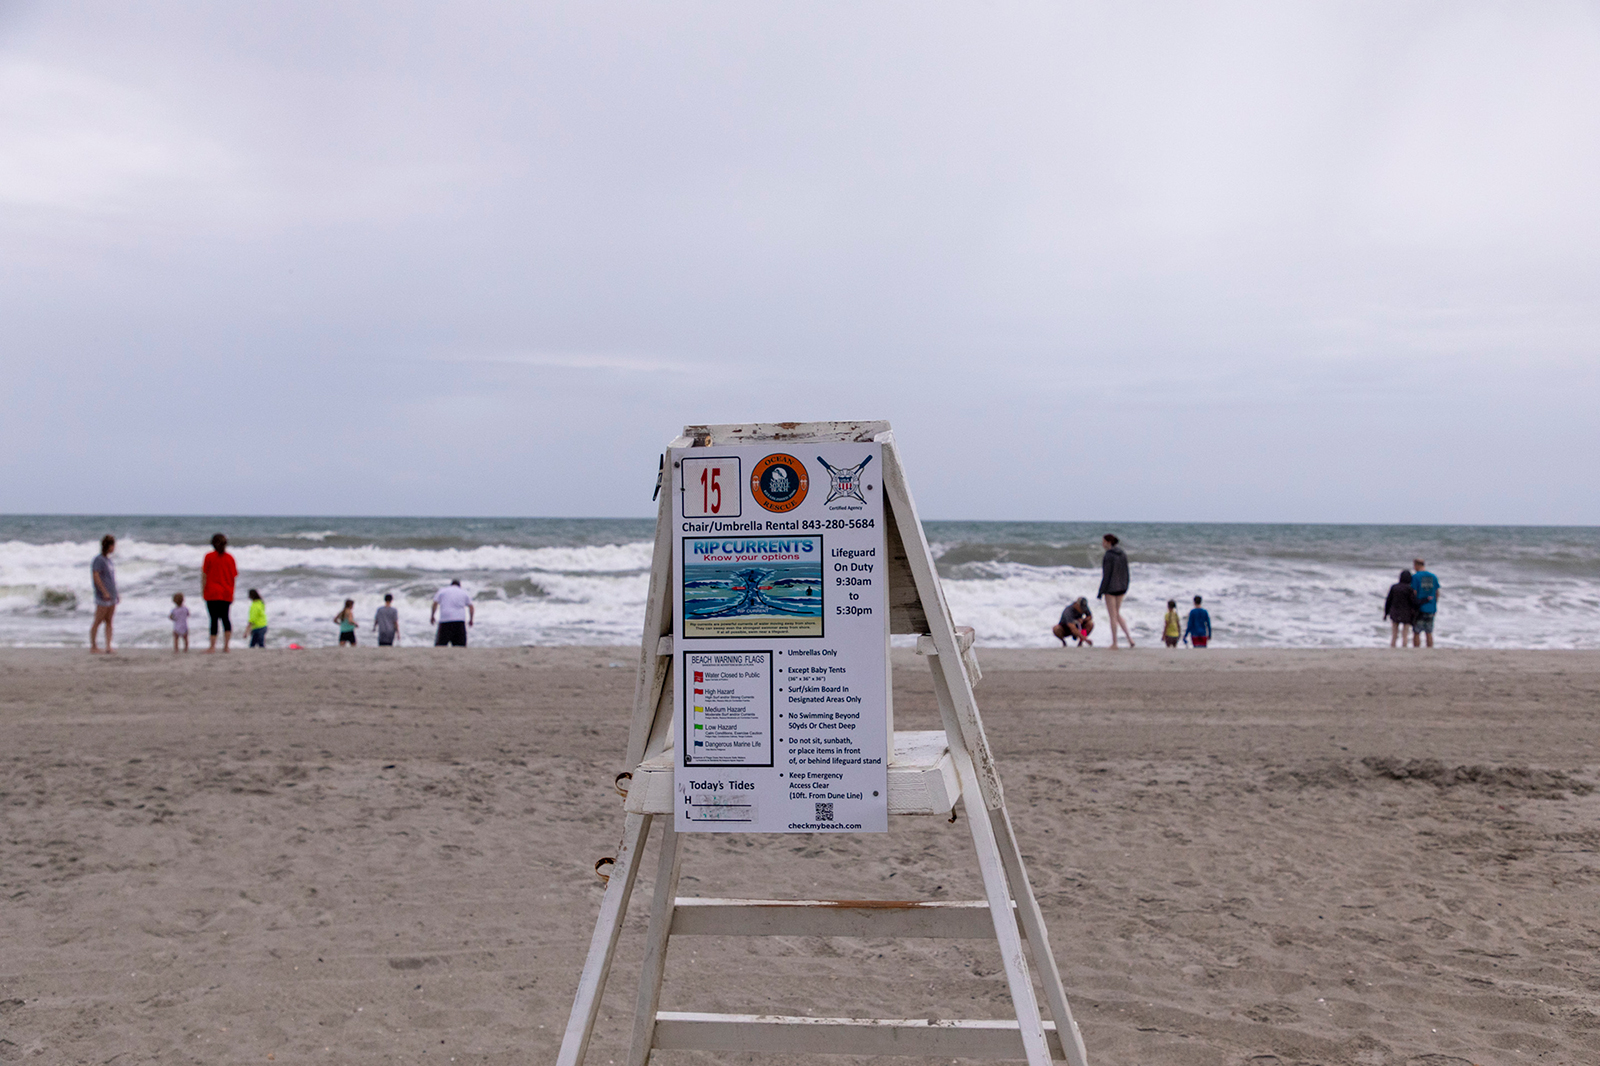 Beachcombers look towards the sea at dawn in North Myrtle Beach where a lifeguard stand warns of rip currents. Tropical Storm Isais is moving up the east coast and is expected to make landfall near Myrtle Beach, S.C., on Monday, Aug. 3